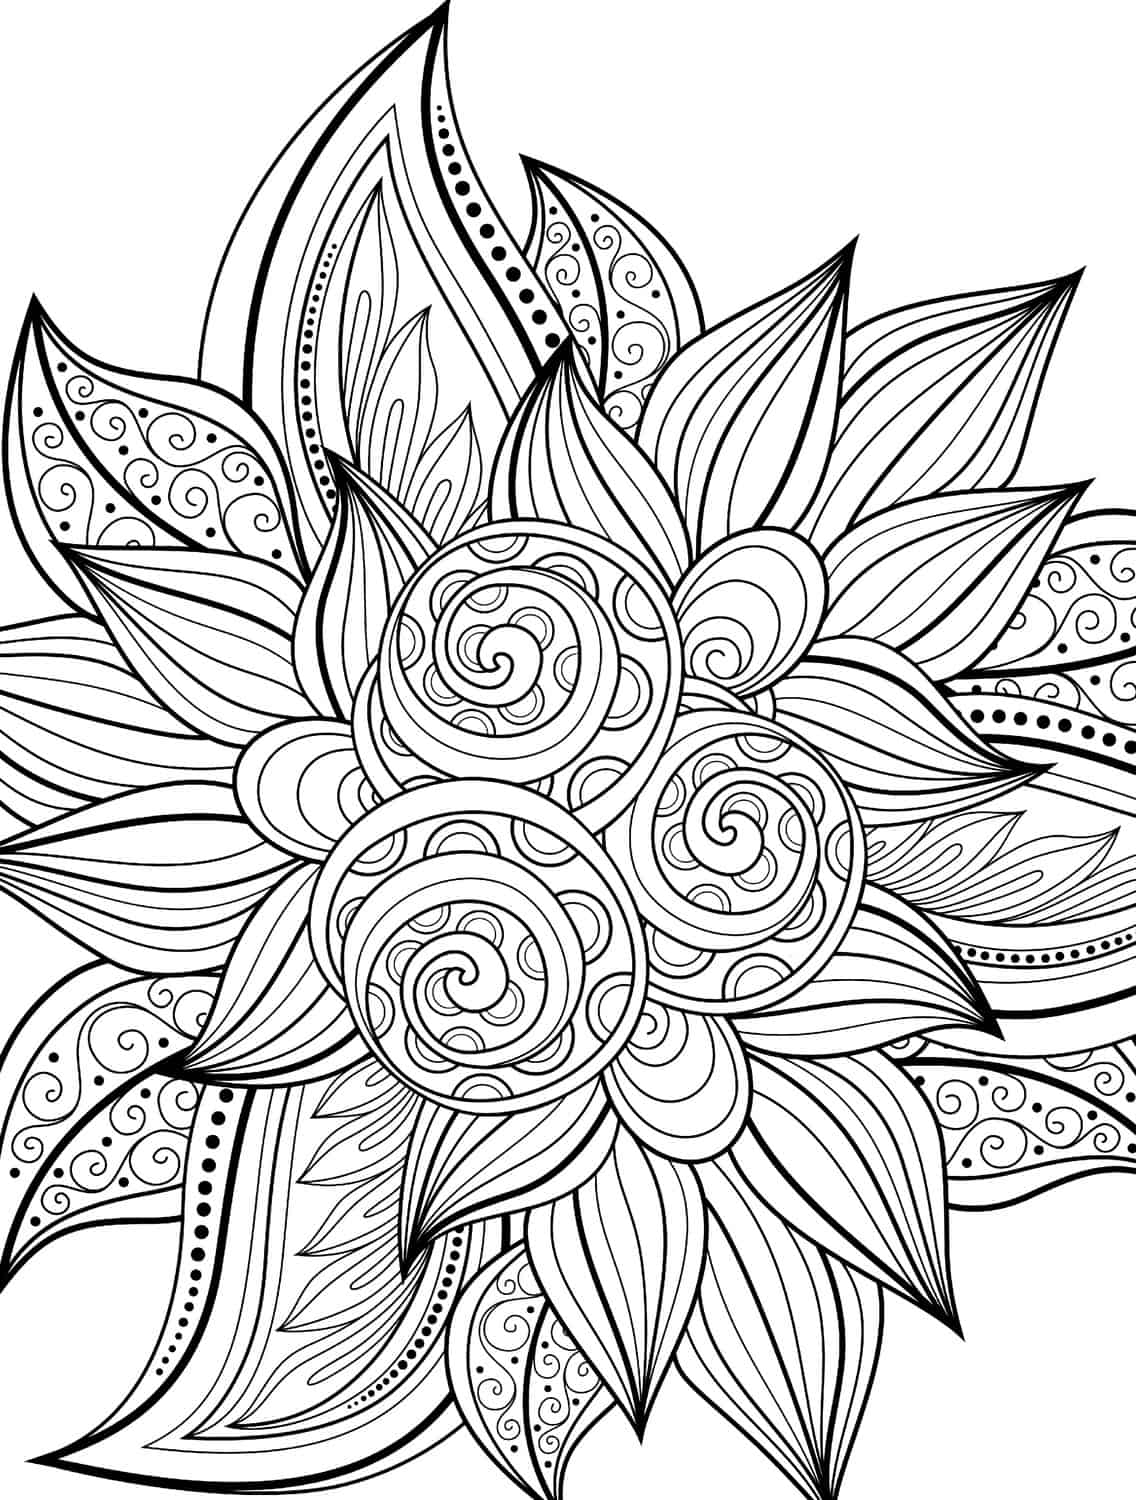 printable pictures to color for adults hard coloring pages for adults best coloring pages for kids printable to color pictures for adults